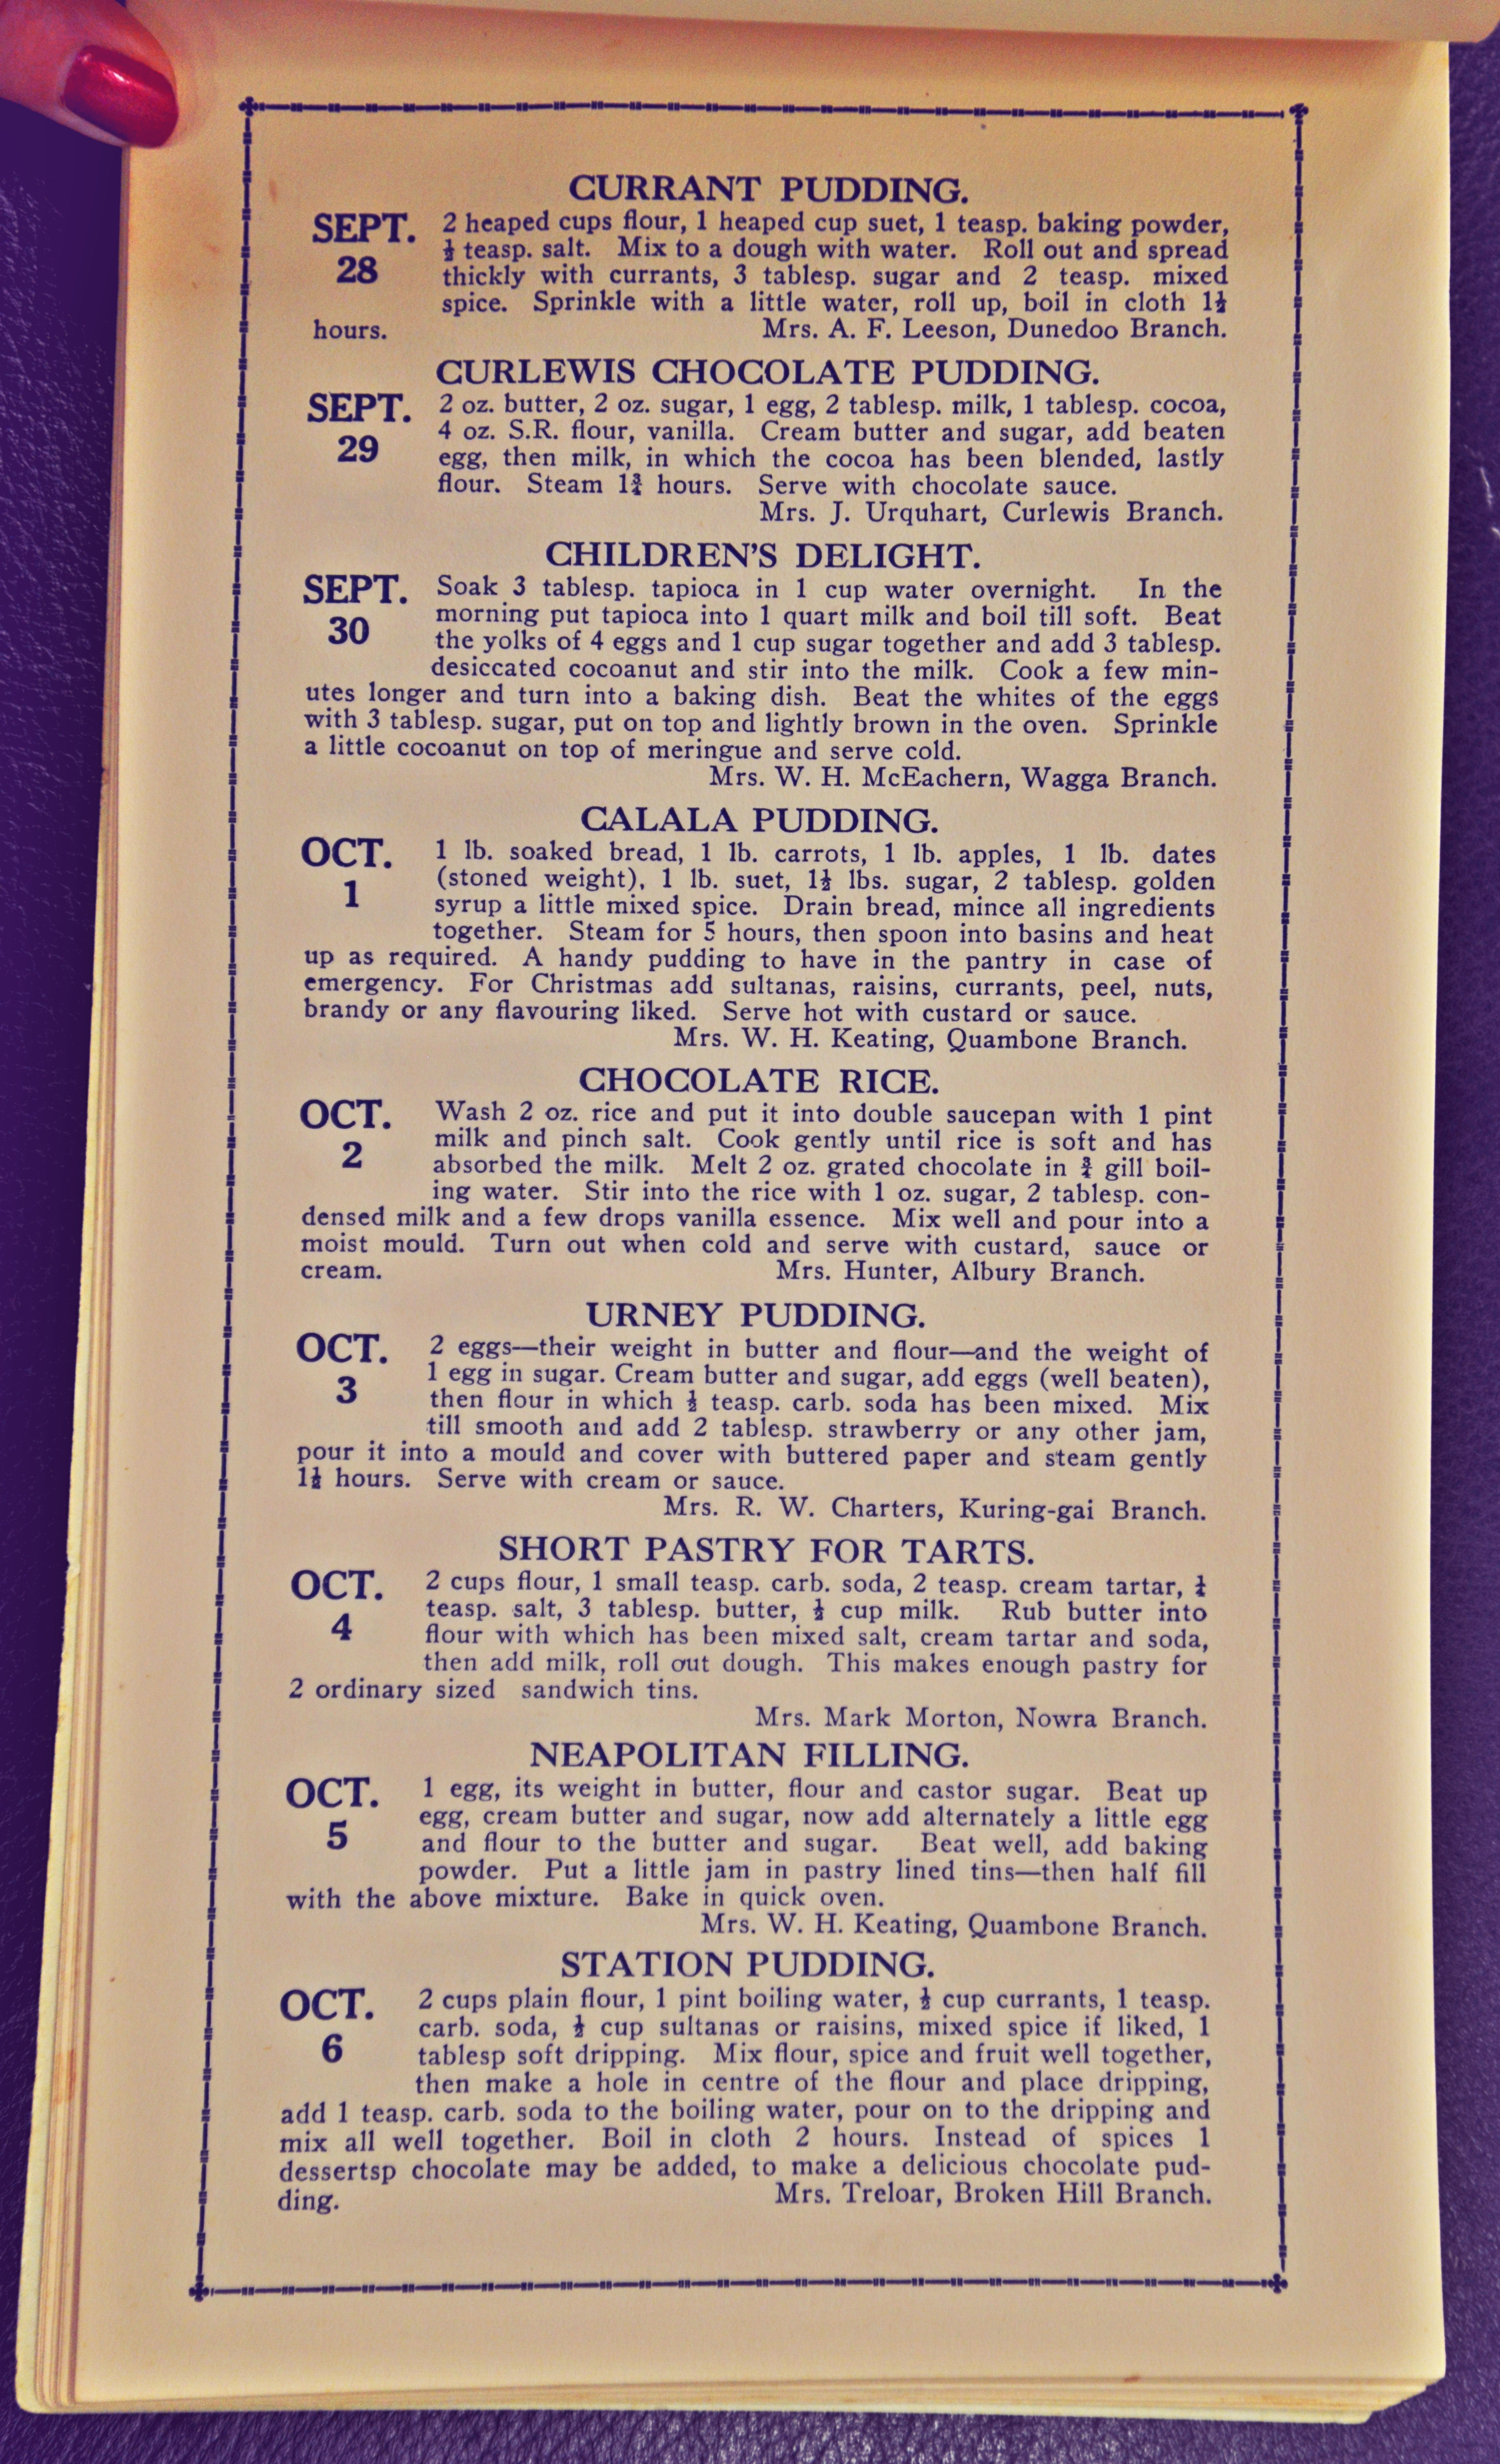 Country Women's Association of New South Wales calendar of puddings : a recipe for each day of the year (28 Sep - 6 Oct)